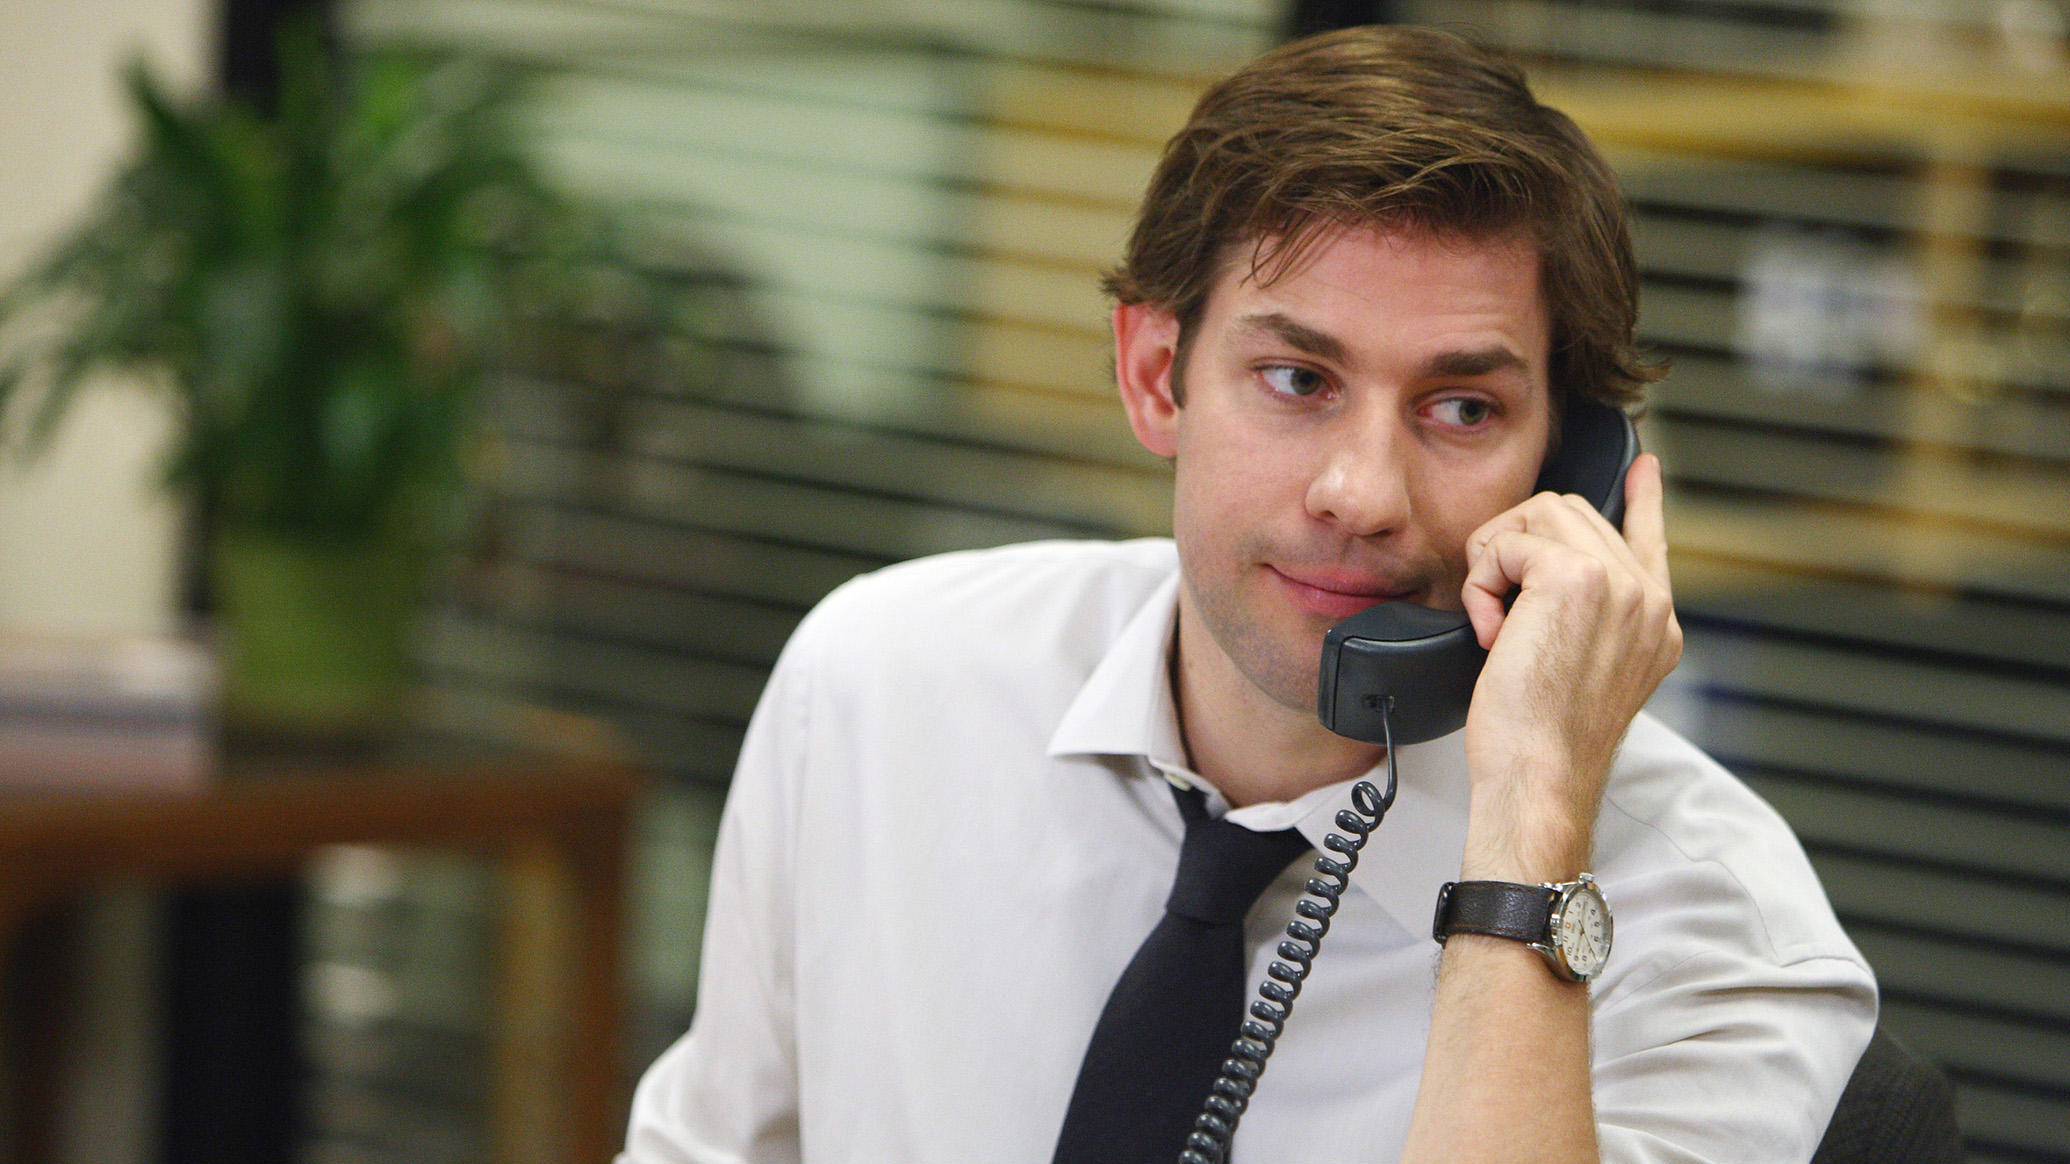 The Office Season 10 Release Unlikely, but Special Episode on the Cards